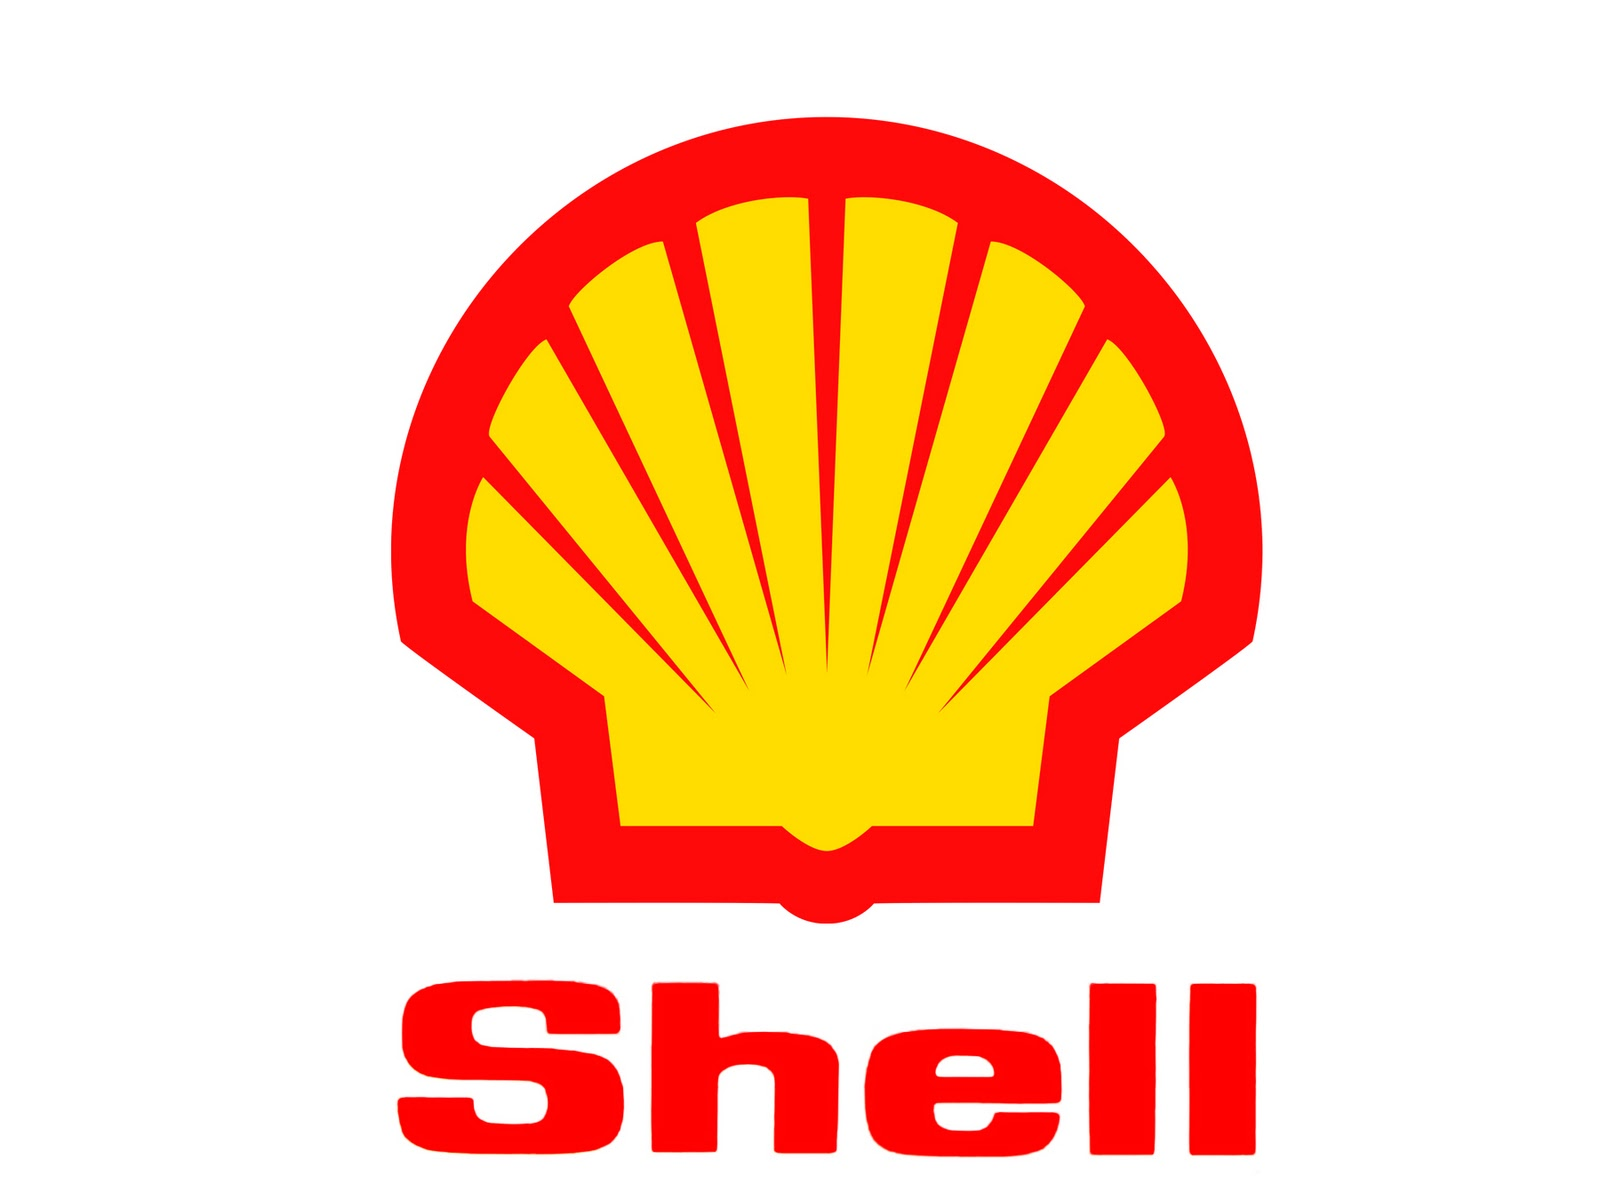 shell royal dutch essays Background royal dutch shell group is one of the world's largest oil corporations and one of the largest companies in europe the company was created as a result.